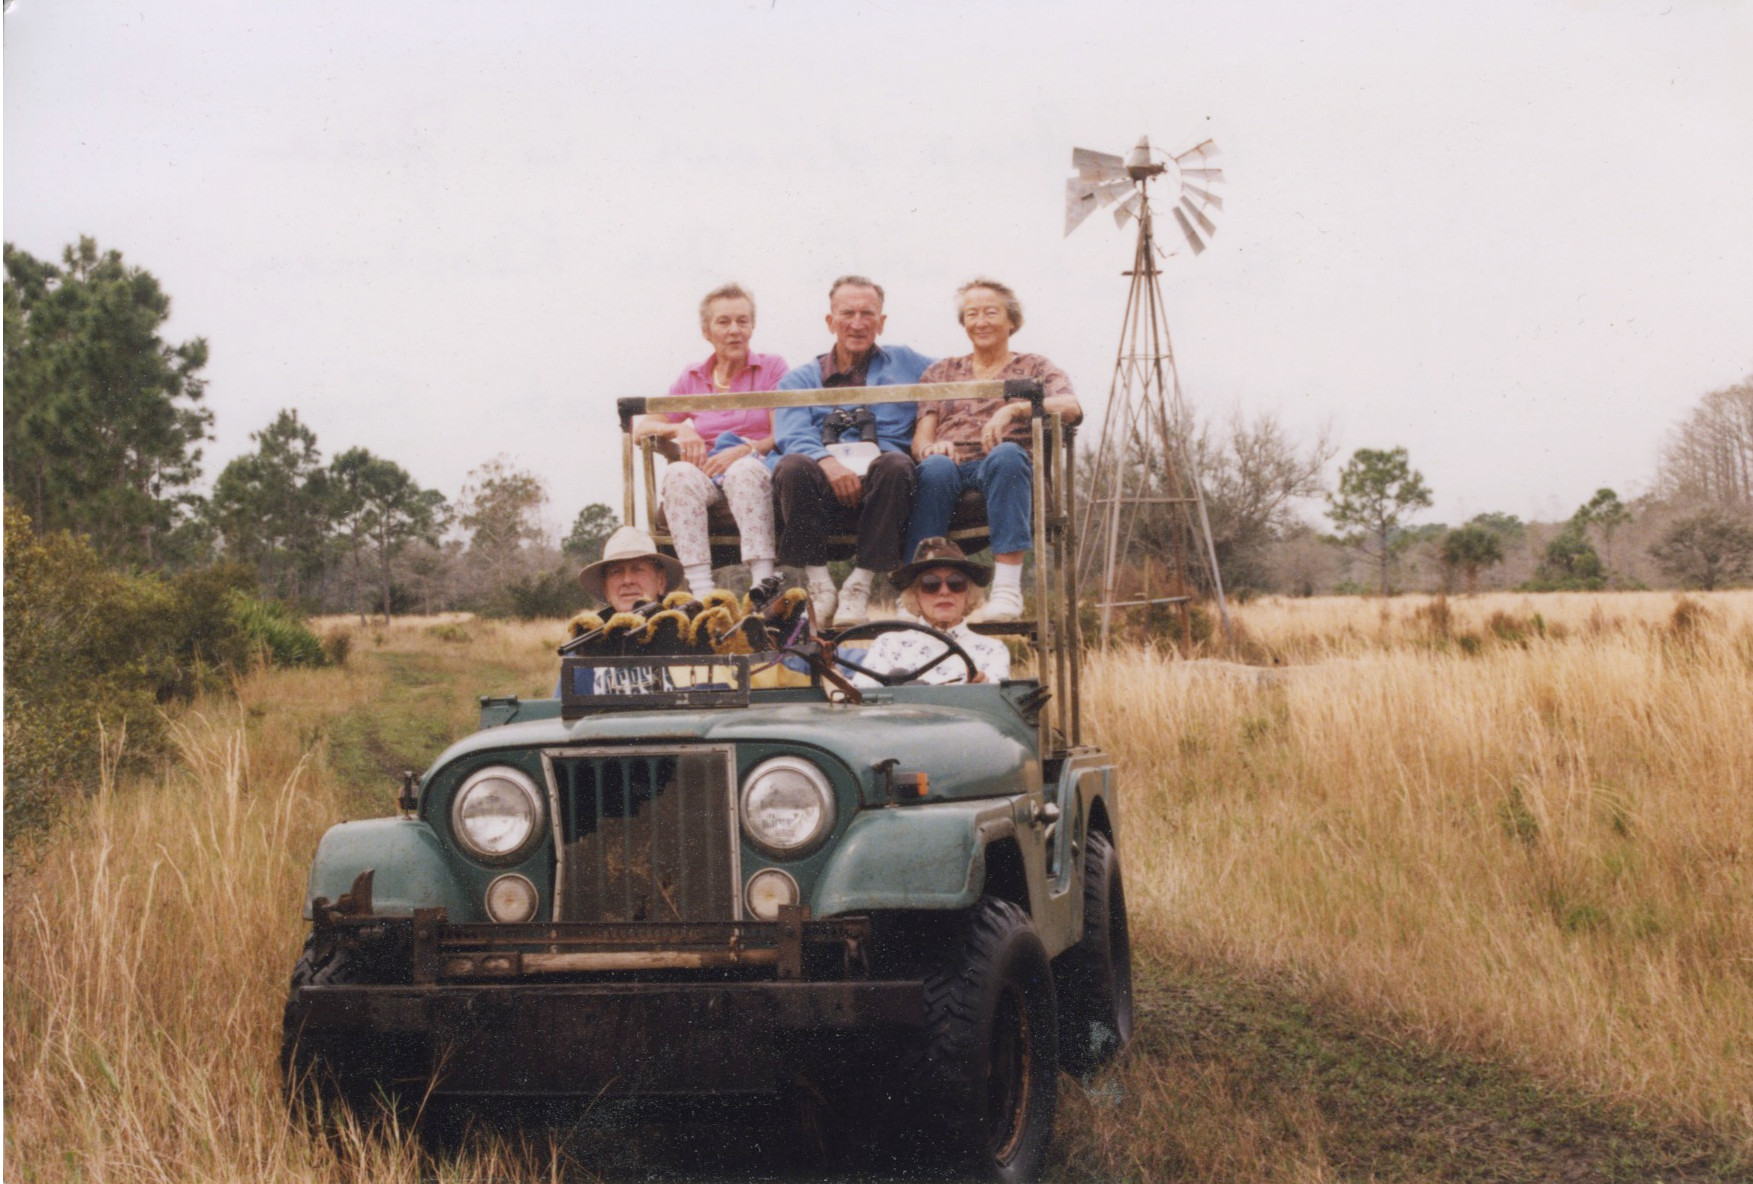 Safari in 1950s